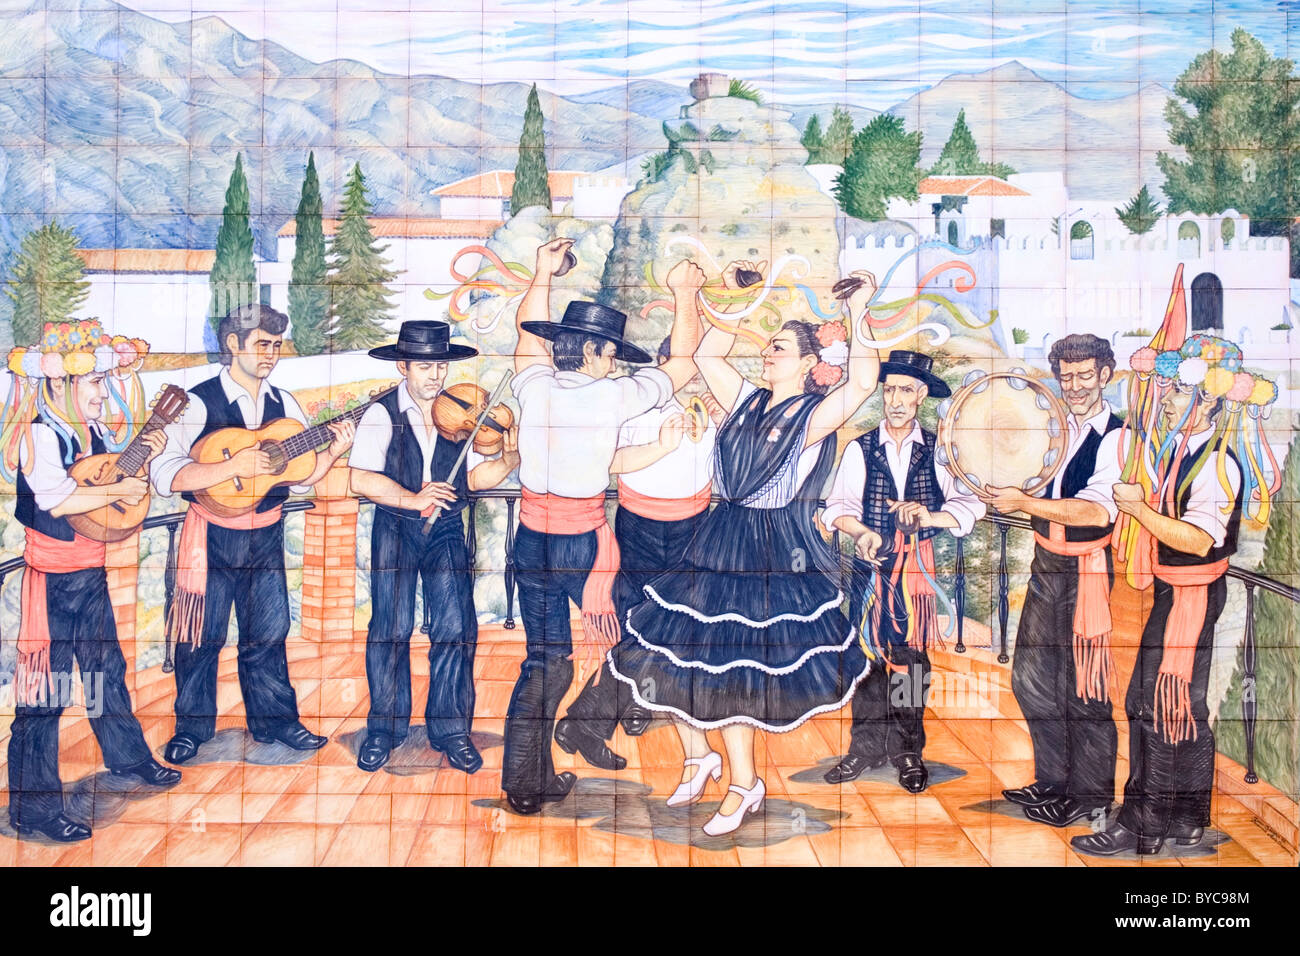 Comares malaga province andalucia spain ceramic tiles comares malaga province andalucia spain ceramic tiles depicting the verdiales dancers and dailygadgetfo Choice Image